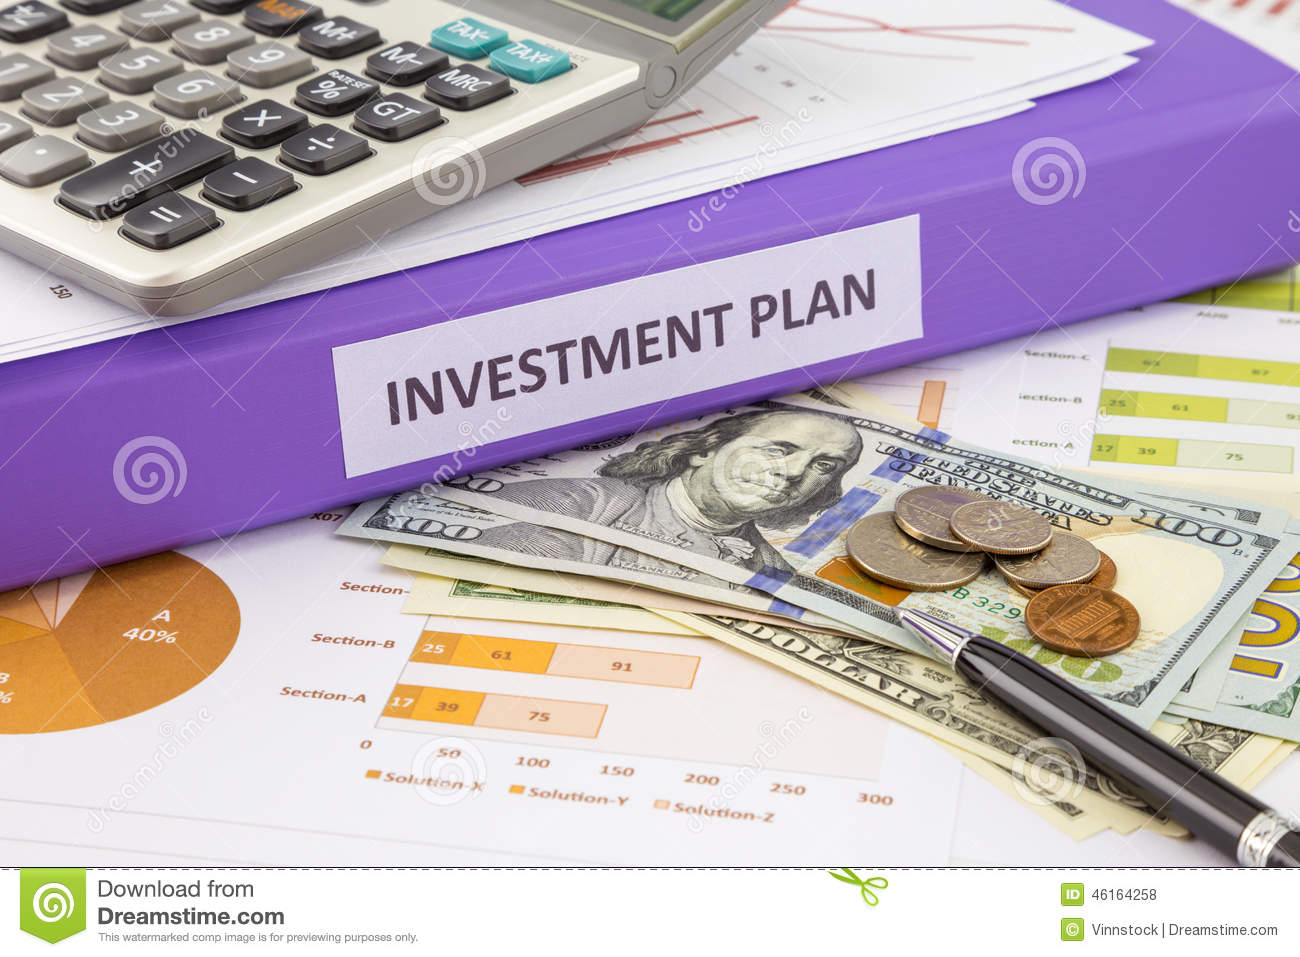 Developing an Investment Plan